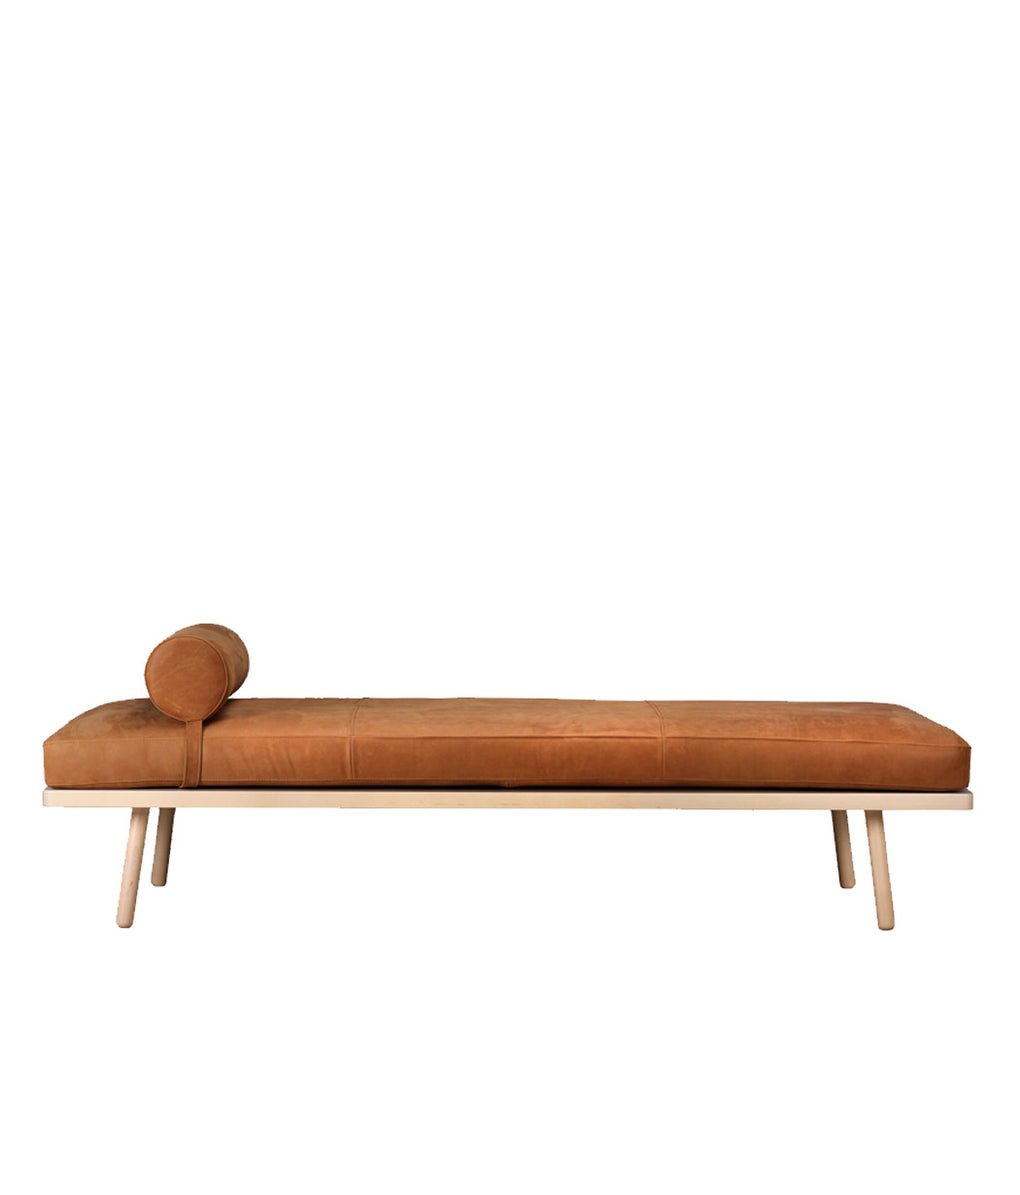 Nap Leather Daybed